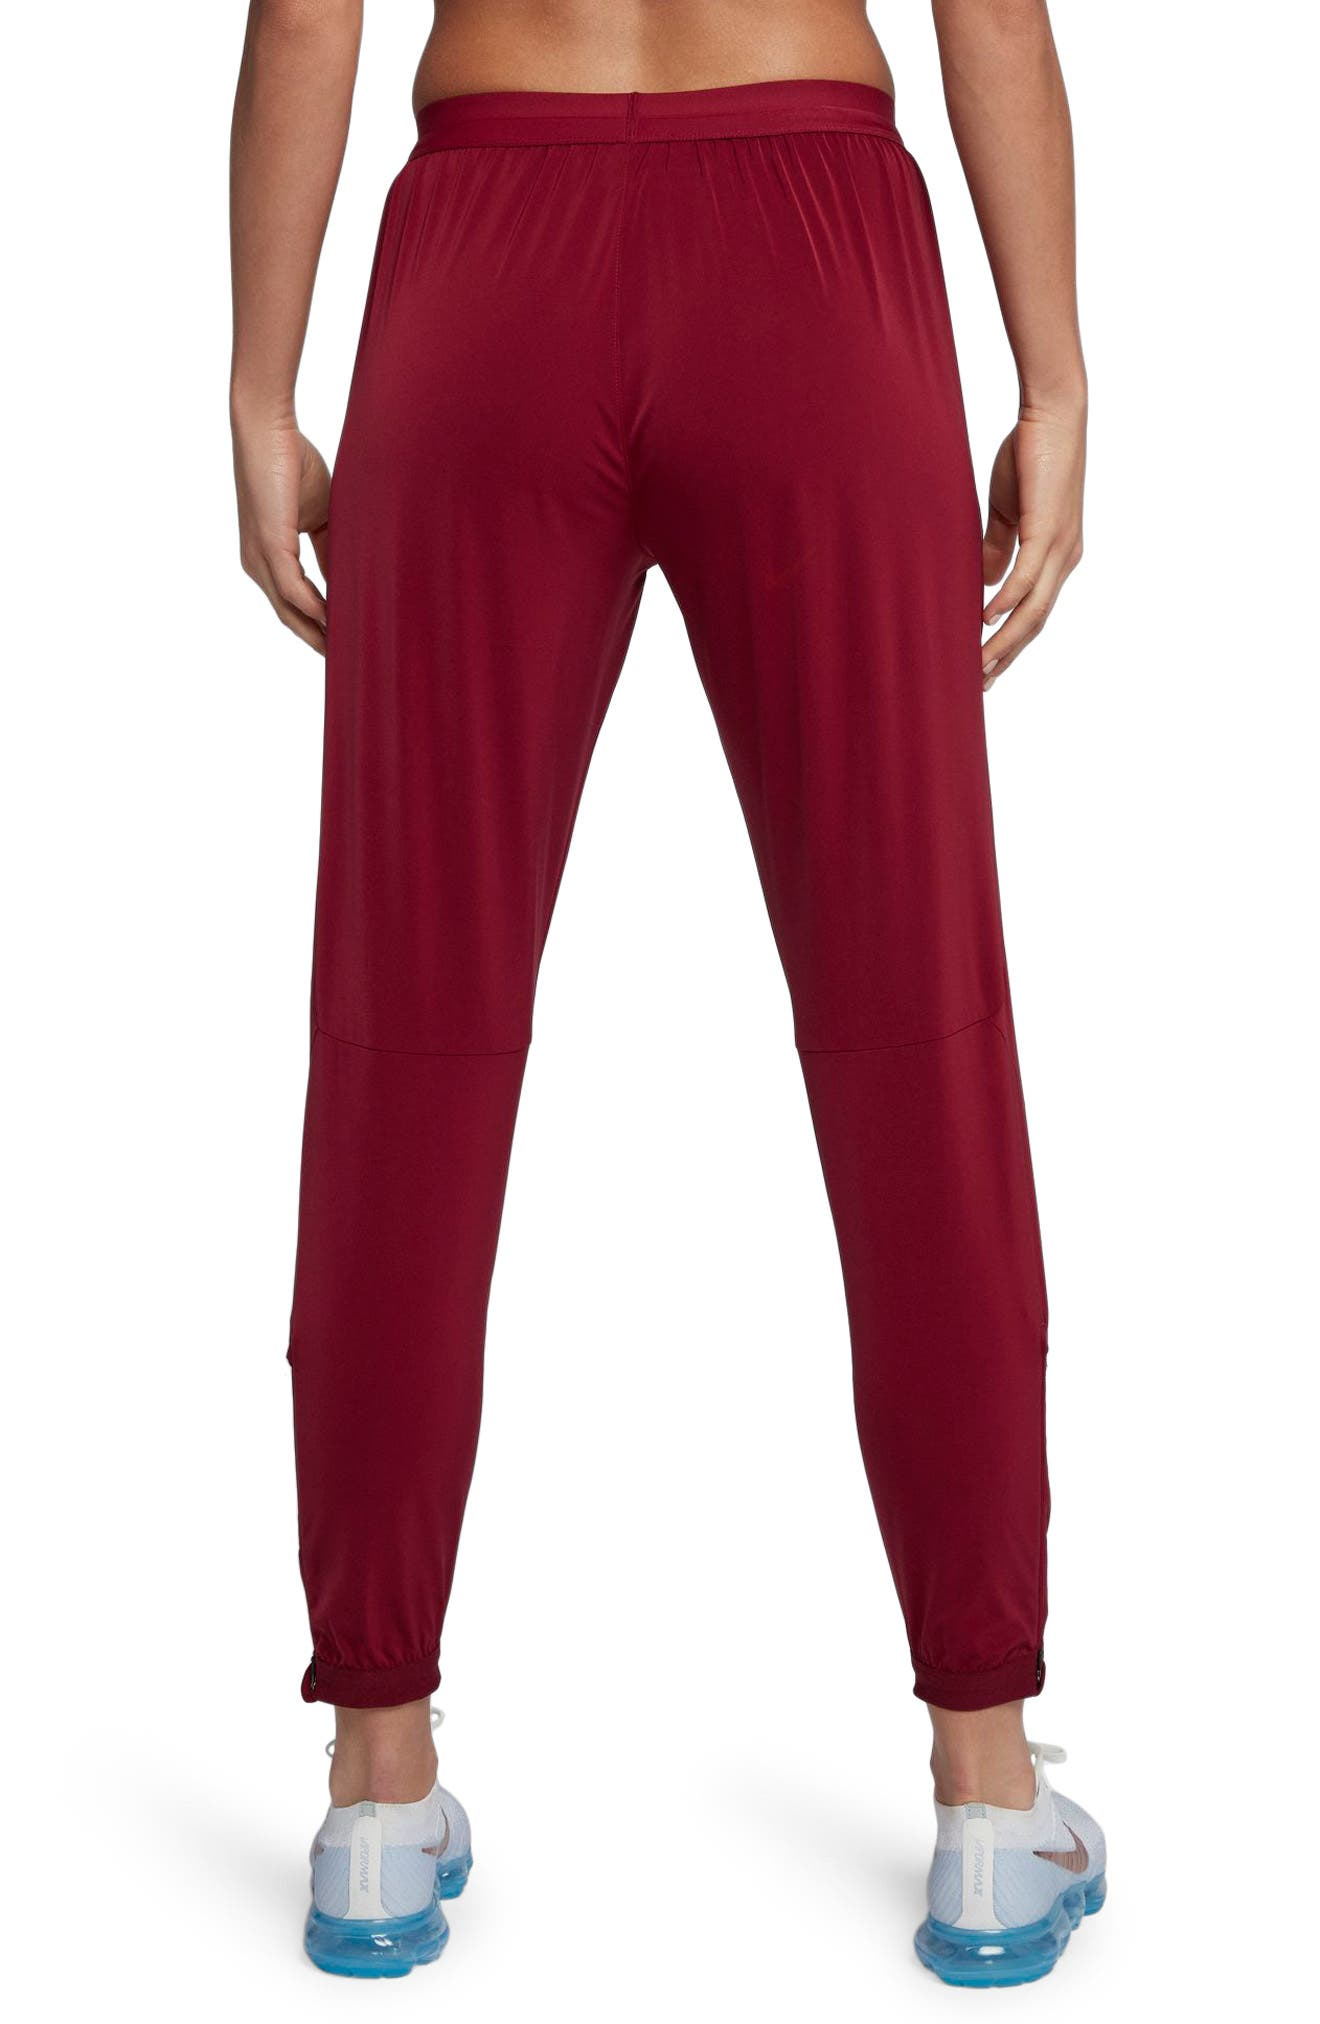 Women's Dry Running Stadium Pants,                             Alternate thumbnail 2, color,                             Team Red/ Vintage Coral